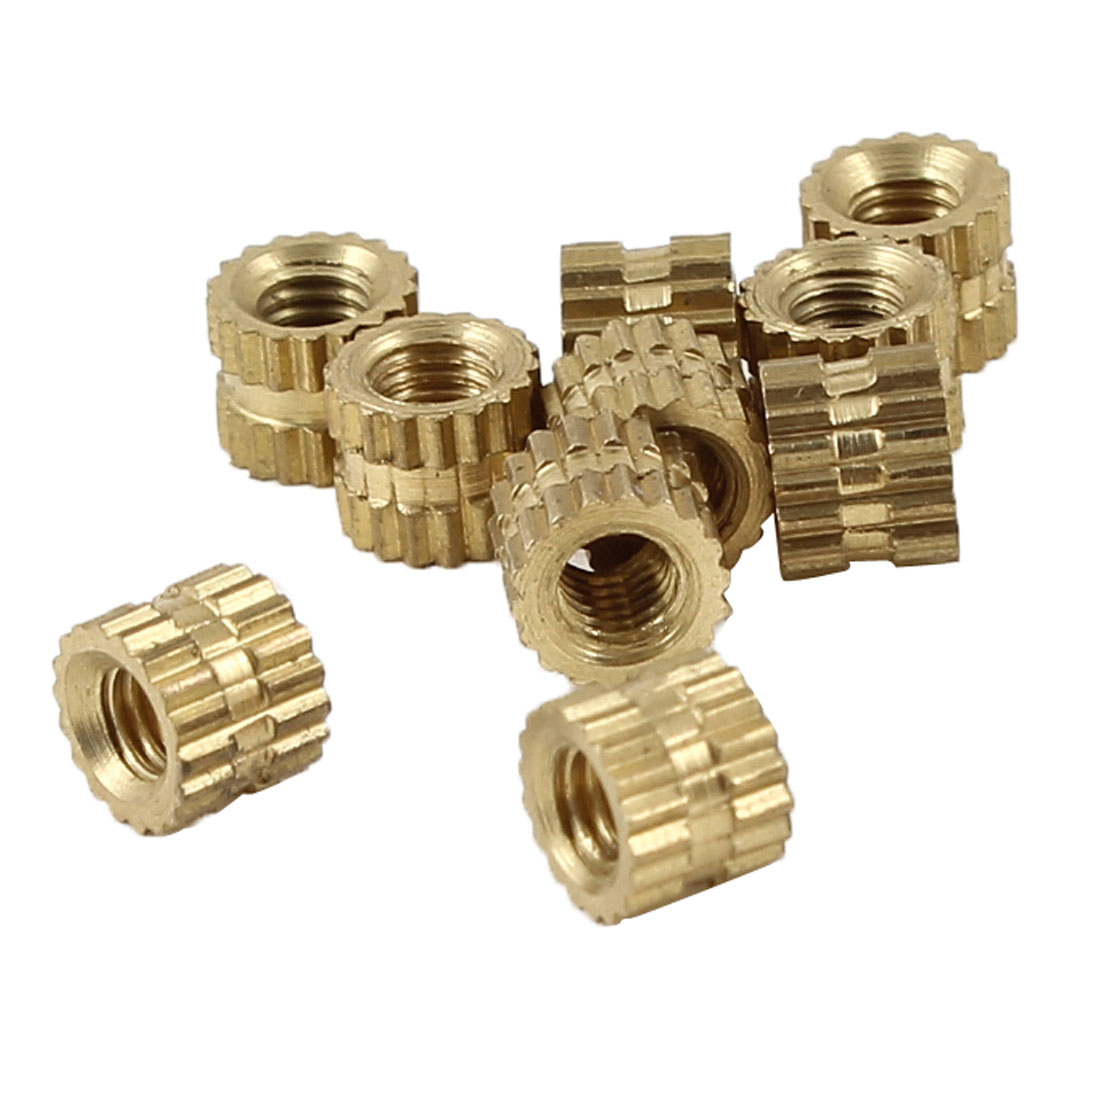 10 Pcs Knurl Brass Fittings 3mm Thread Inserts 5mm x 4mm for Injection Molding